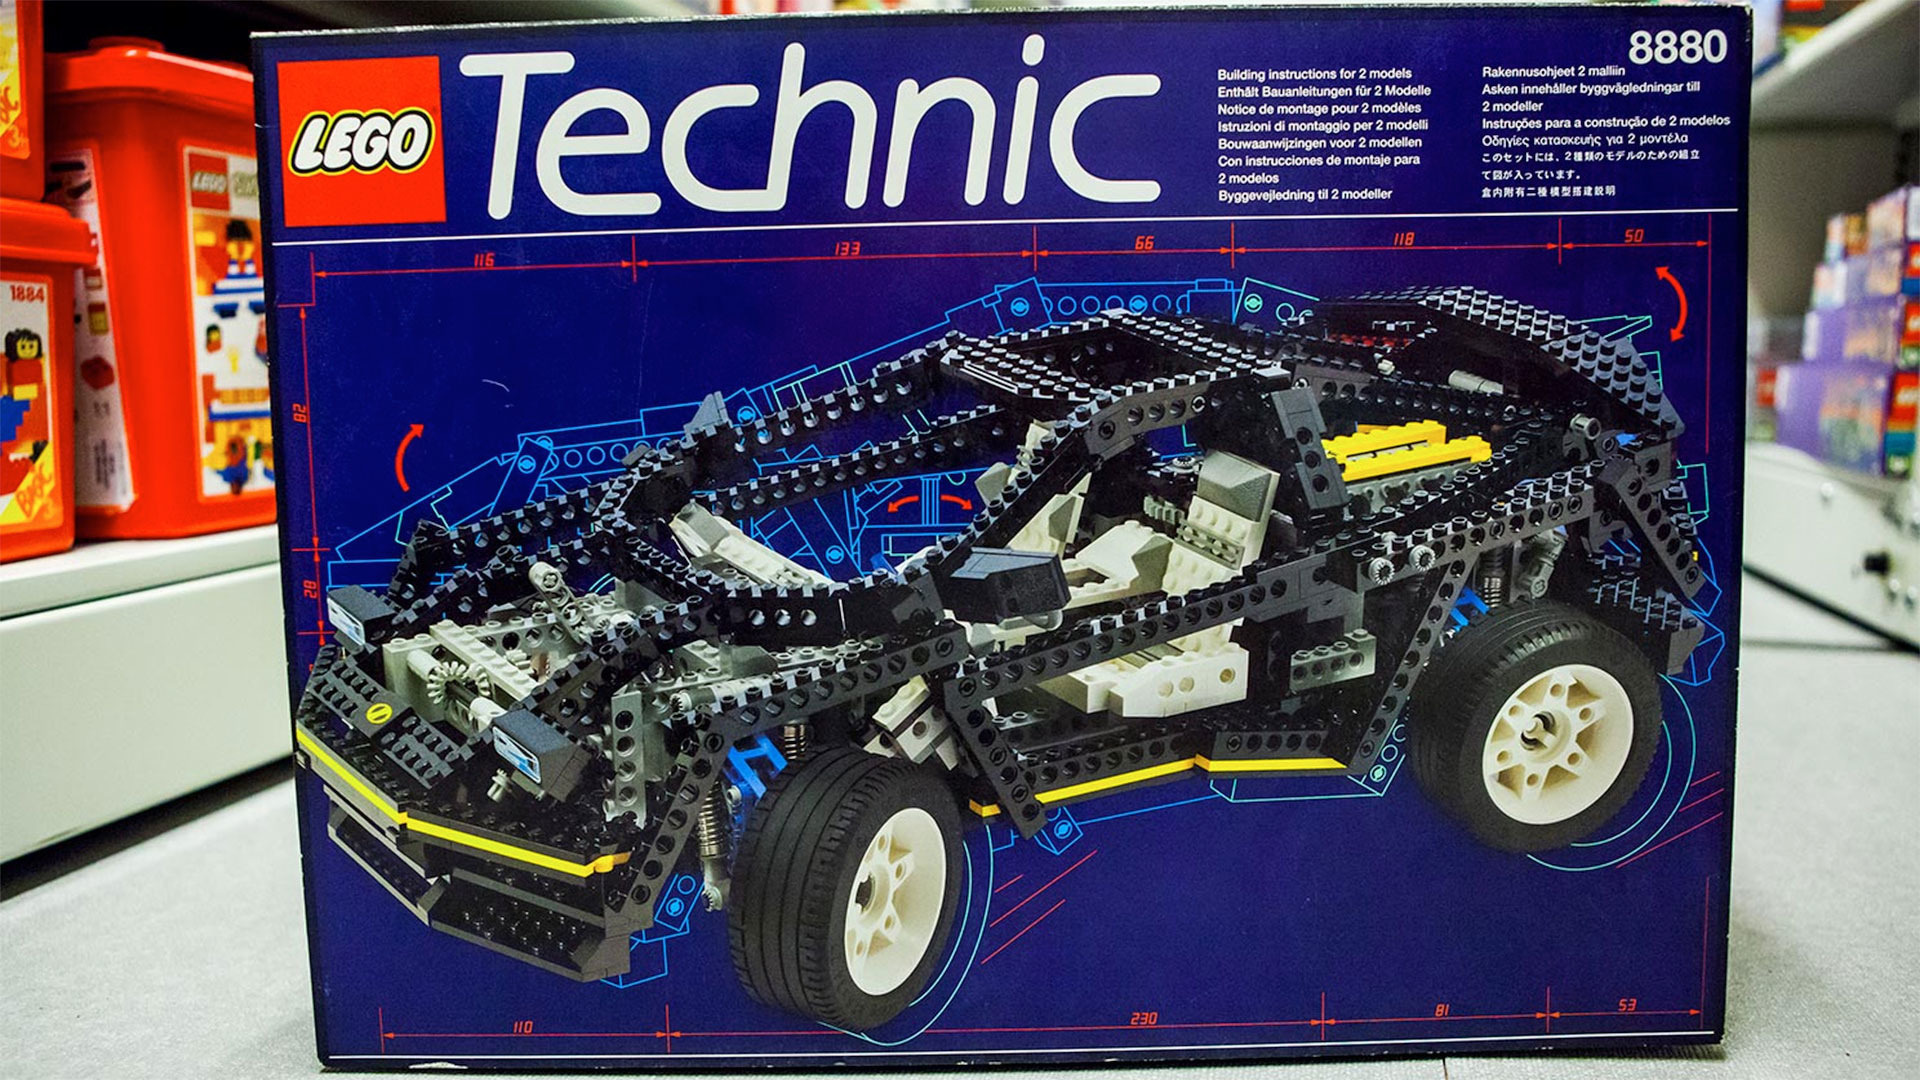 We Buy Used Cars >> The Lego Technic Car I Always Wanted Now Costs A Thousand Bucks